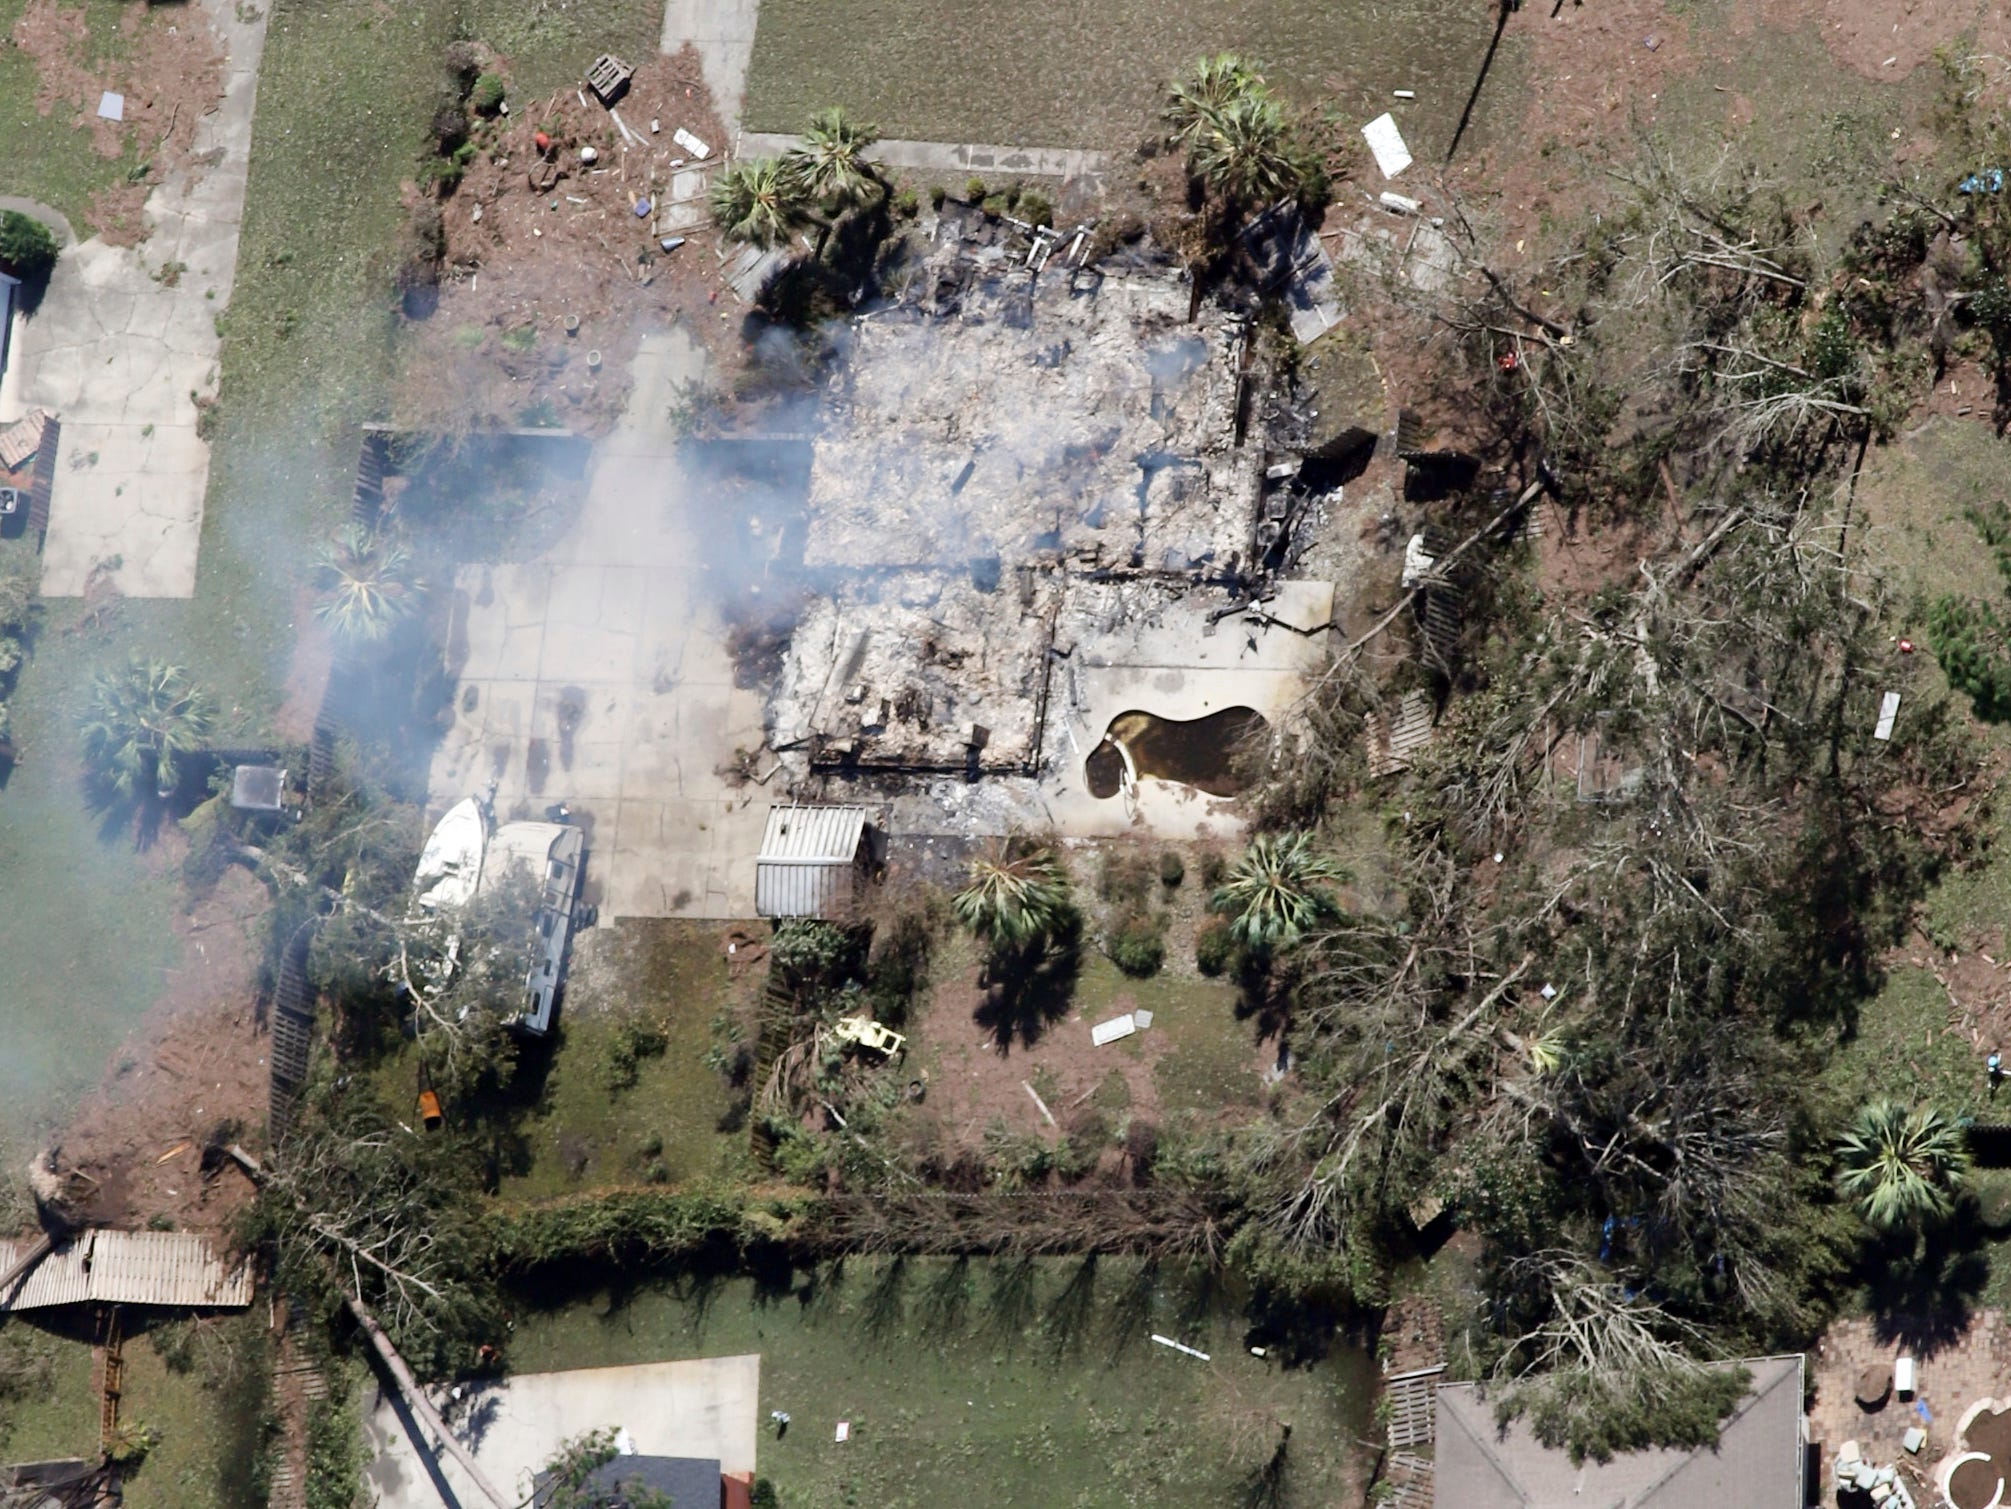 This aerial photo shows a home smoldering, Thursday, Oct. 11, 2018, in Mexico Beach, Fla. The devastation inflicted by Hurricane Michael came into focus Thursday with rows upon rows of homes found smashed to pieces, and rescue crews began making their way into the stricken areas in hopes of accounting for hundreds of people who may have stayed behind. (Michael Snyder/Northwest Florida Daily News via AP)